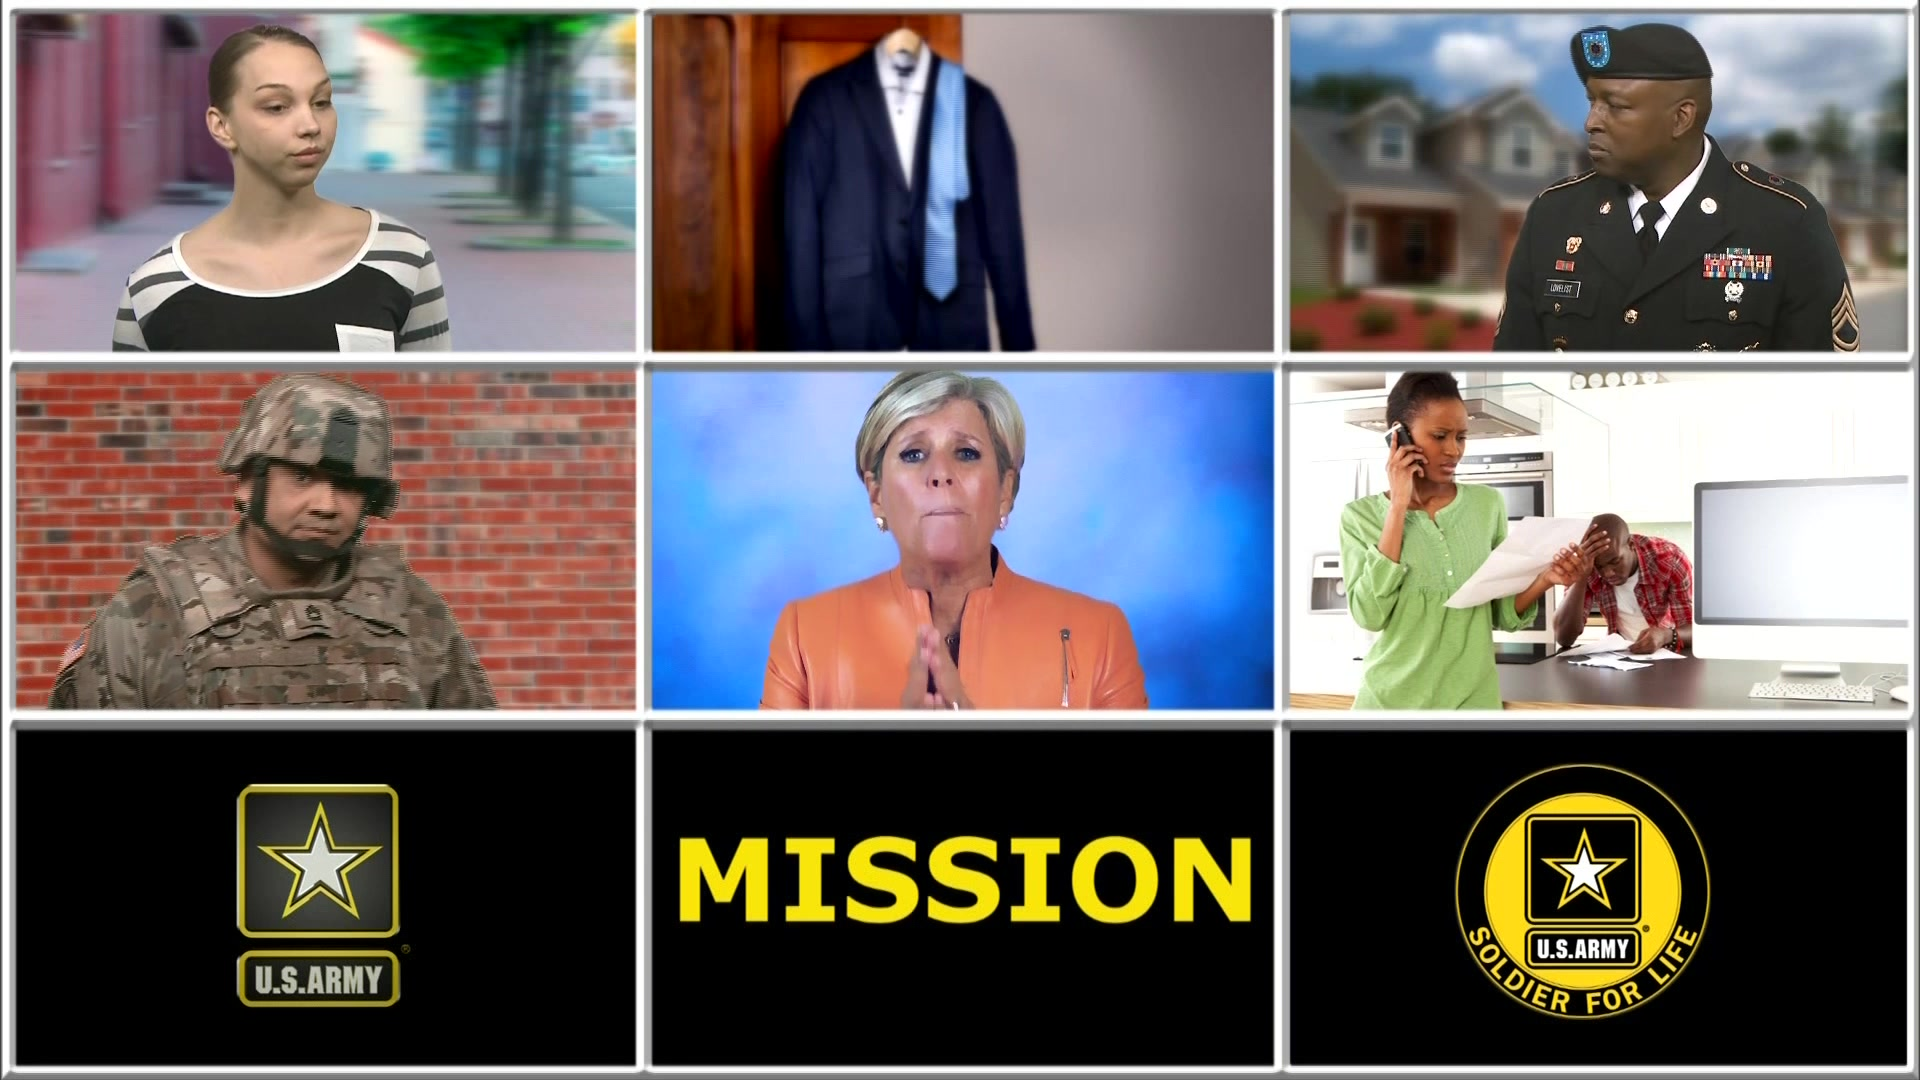 This video features Suze Orman, a personal financial expert, who volunteered her services to help Commanders discuss the importance of Soldiers and their Families taking charge of their personal finances whether in or out of the military. Army Families receive advice on how to ensure they are financially secure and how to best save for retirement in light of the new retirement system scheduled to be implemented in 2018.  Soldiers are encouraged to talk with their Chain of Concern, contact a Financial Counselor, and become familiar with resources like Military OneSource and their Army Community Service center. Produced by LTC Renee D. Russo-Johnson.  Also available in High Definition.